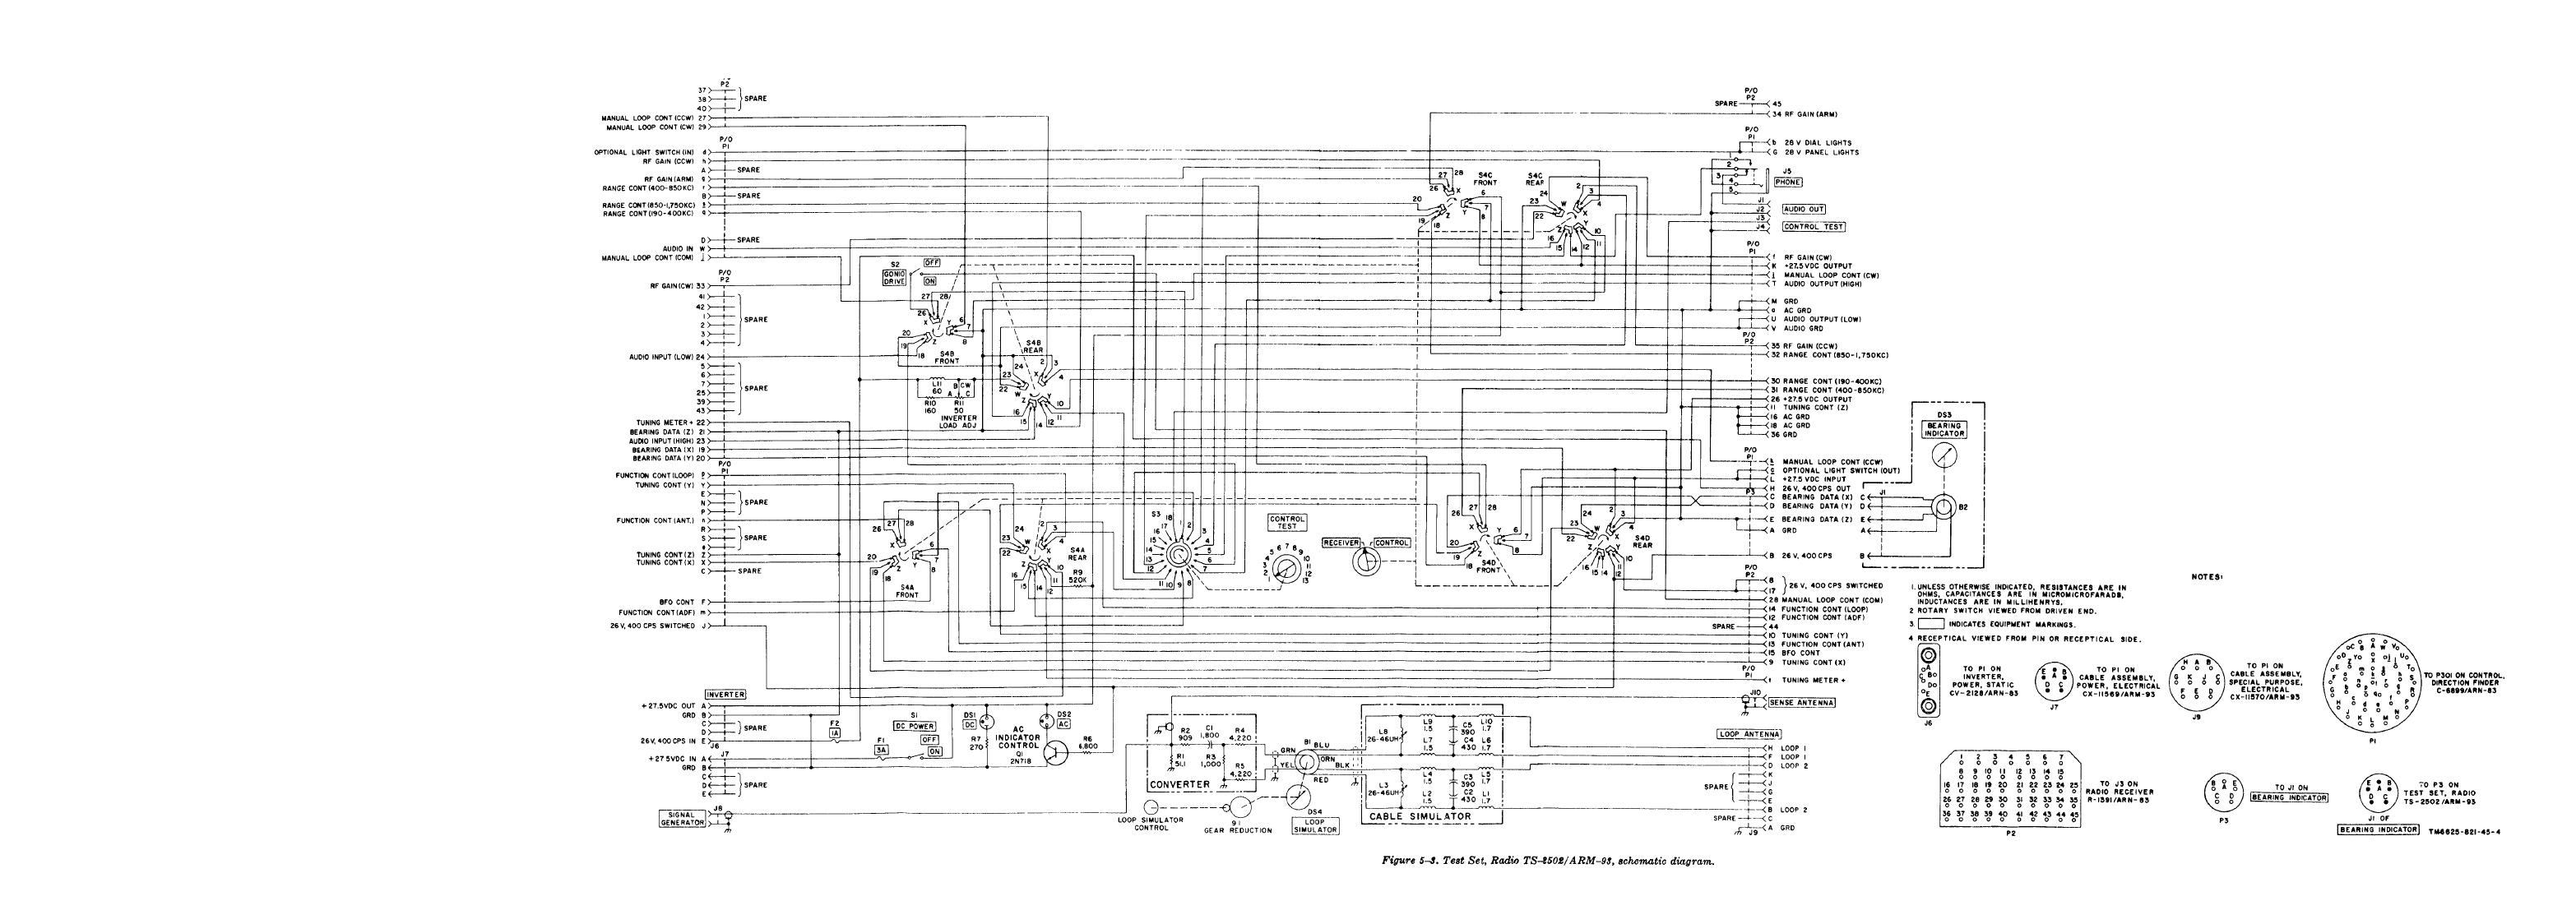 Figure 5 3 Test Set Radio Ts Arm 93 Schematic Diagram